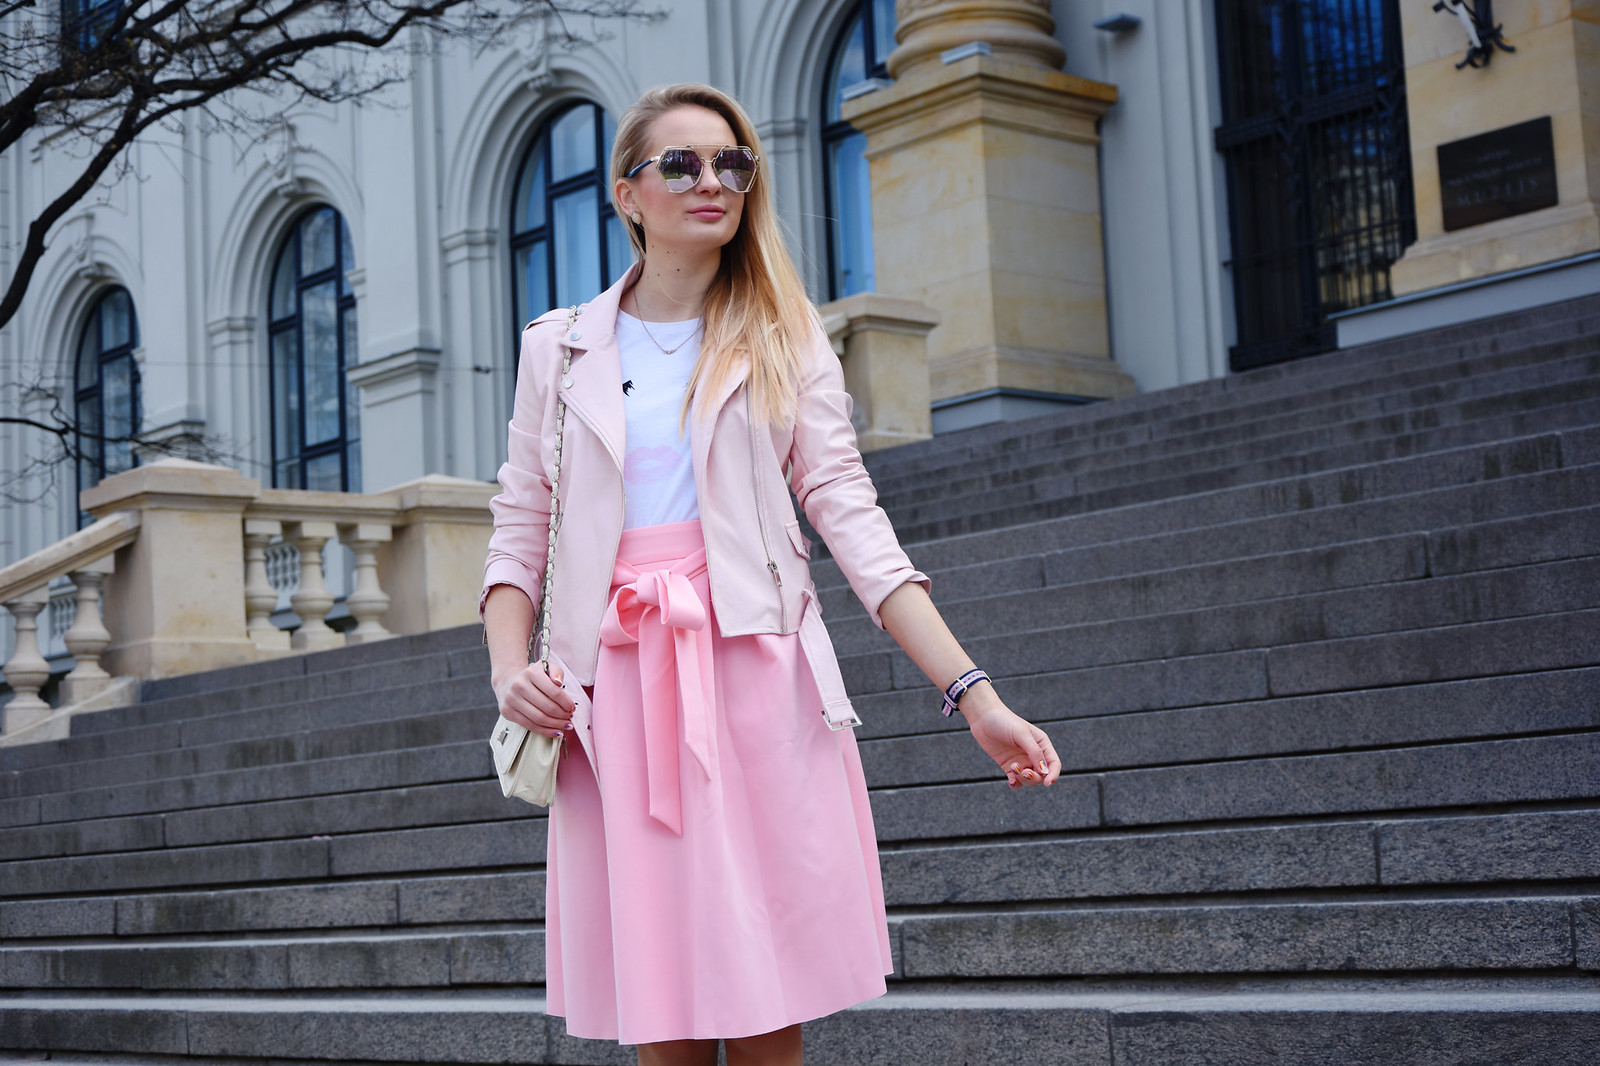 Pink spring outfit inspiratiob